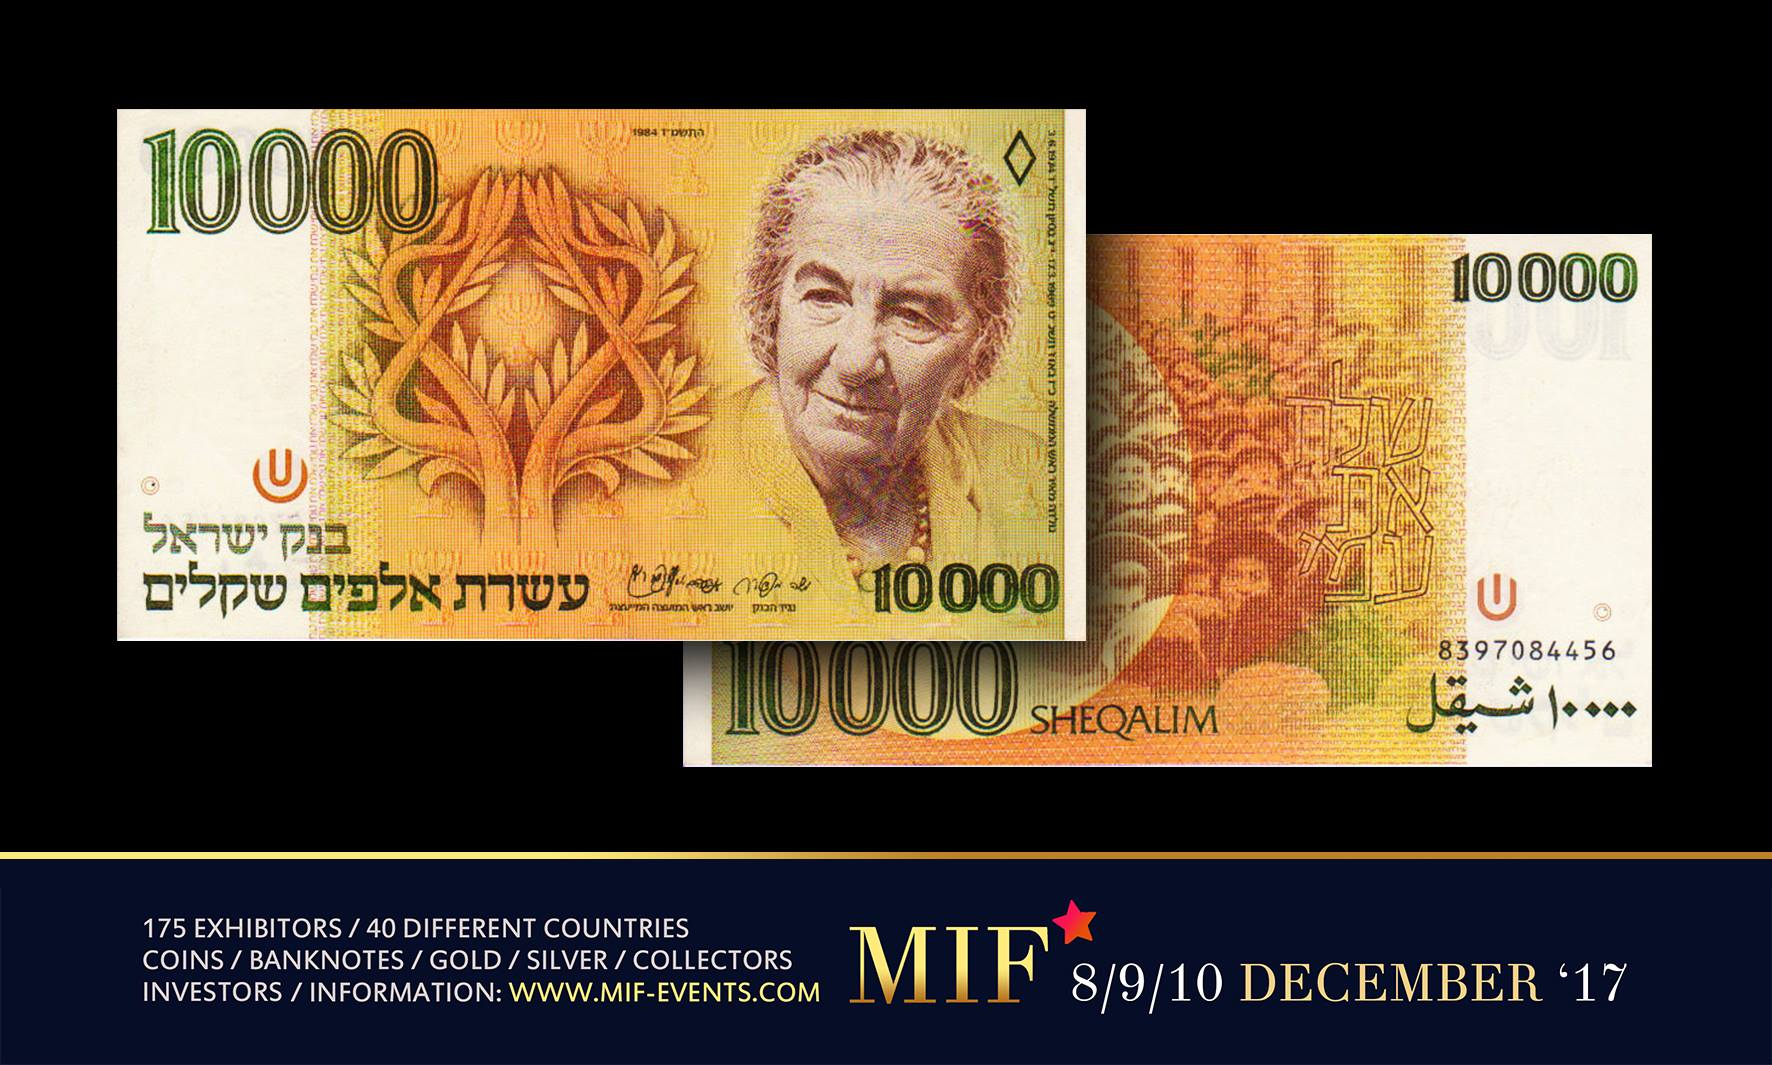 Maastricht International Fair - History of The Israeli Shekel